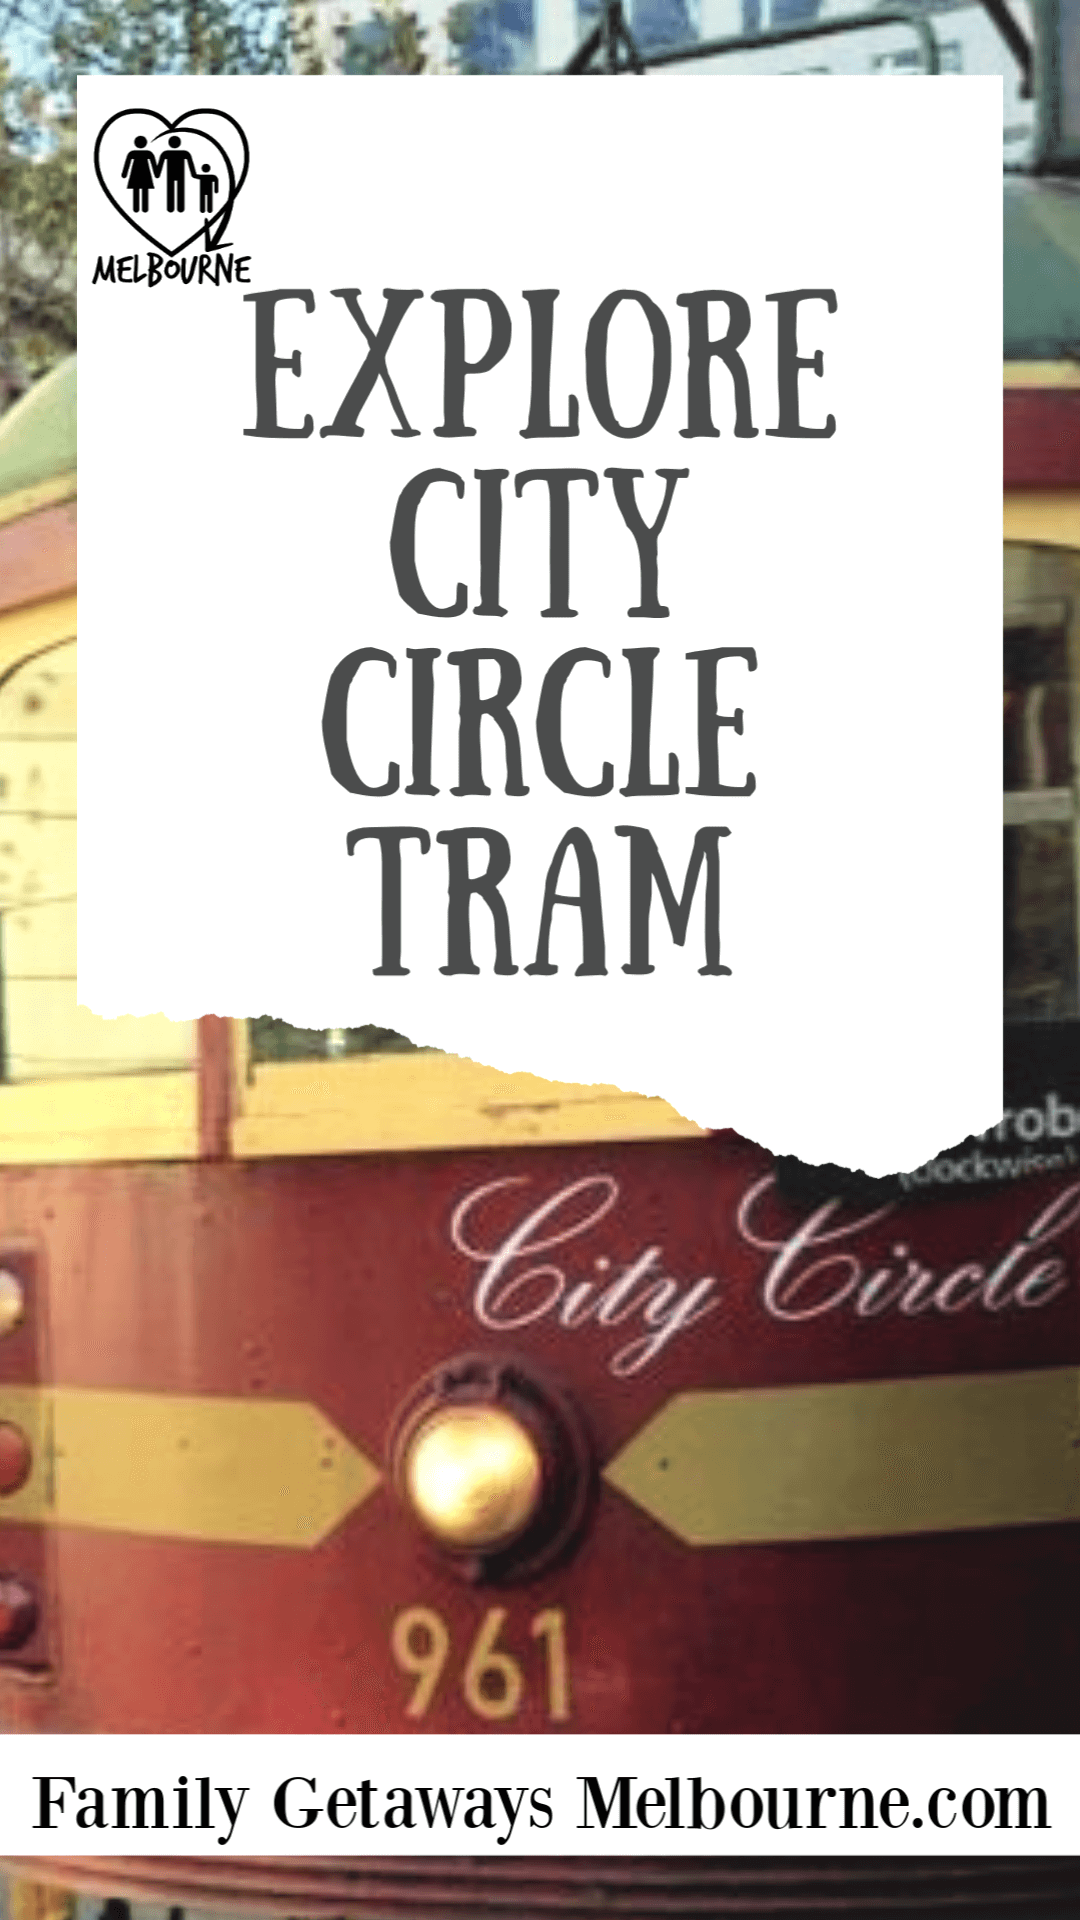 image to pin to pinterest for site page on the free city circle tram